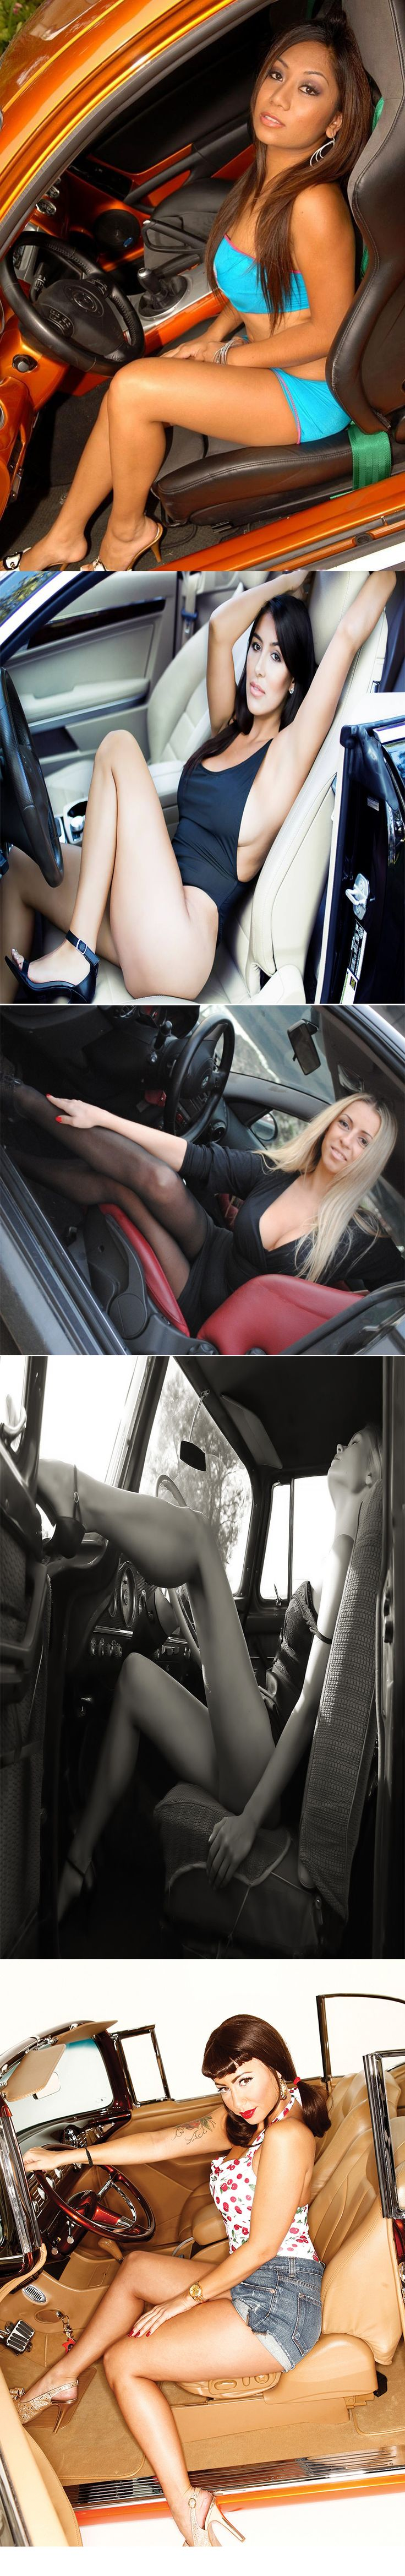 1000 images about girls vs car on pinterest cars girl car and luxury cars. Black Bedroom Furniture Sets. Home Design Ideas